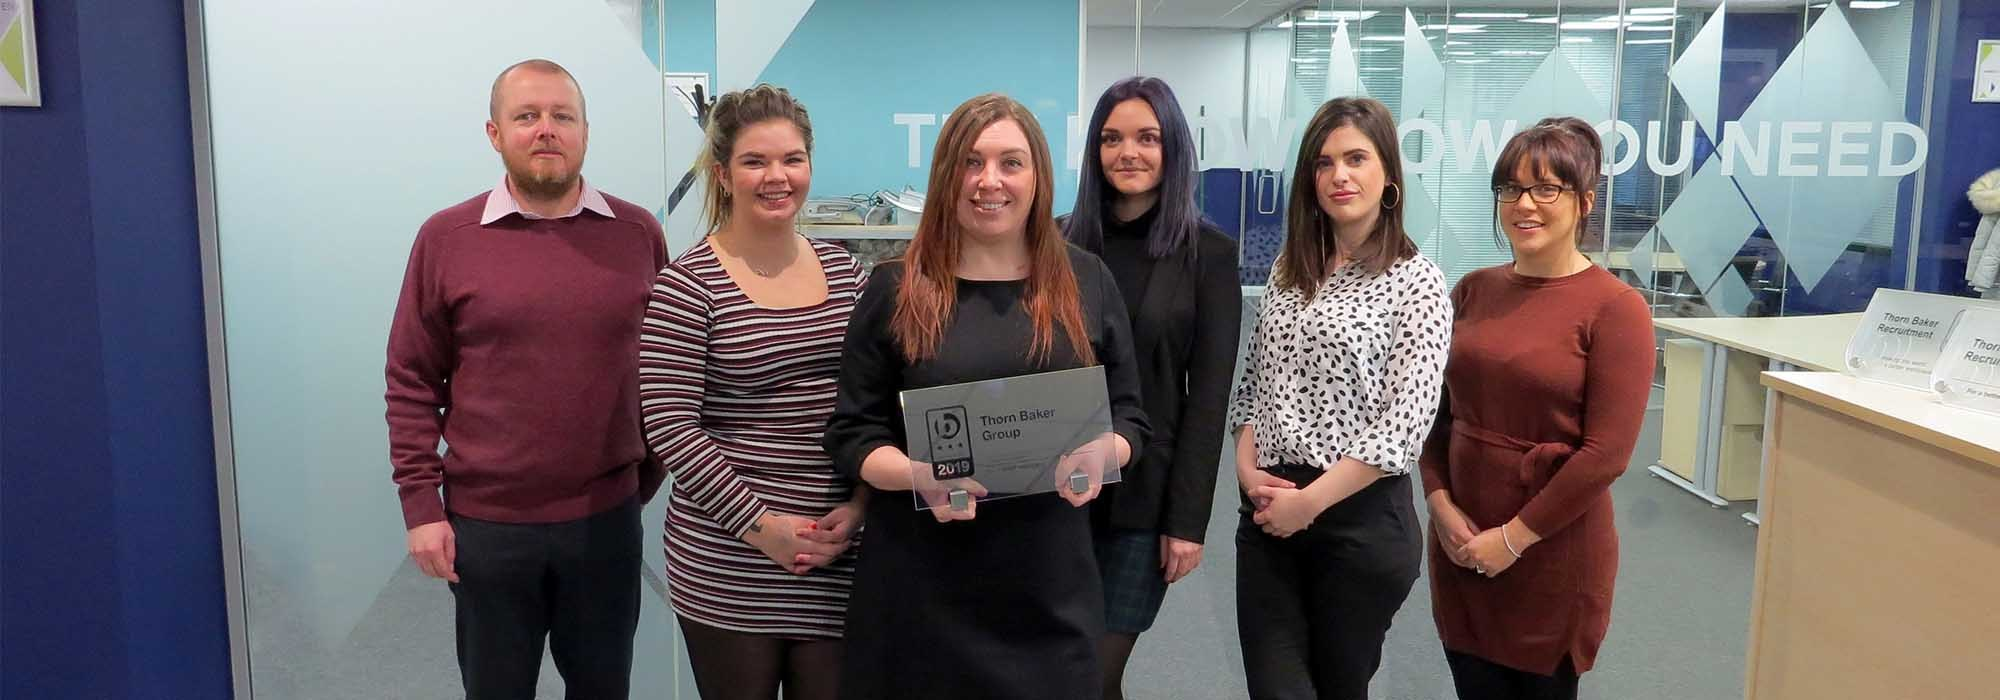 Thorn Baker Group Achieves a Three Star Accreditation from Best Companies